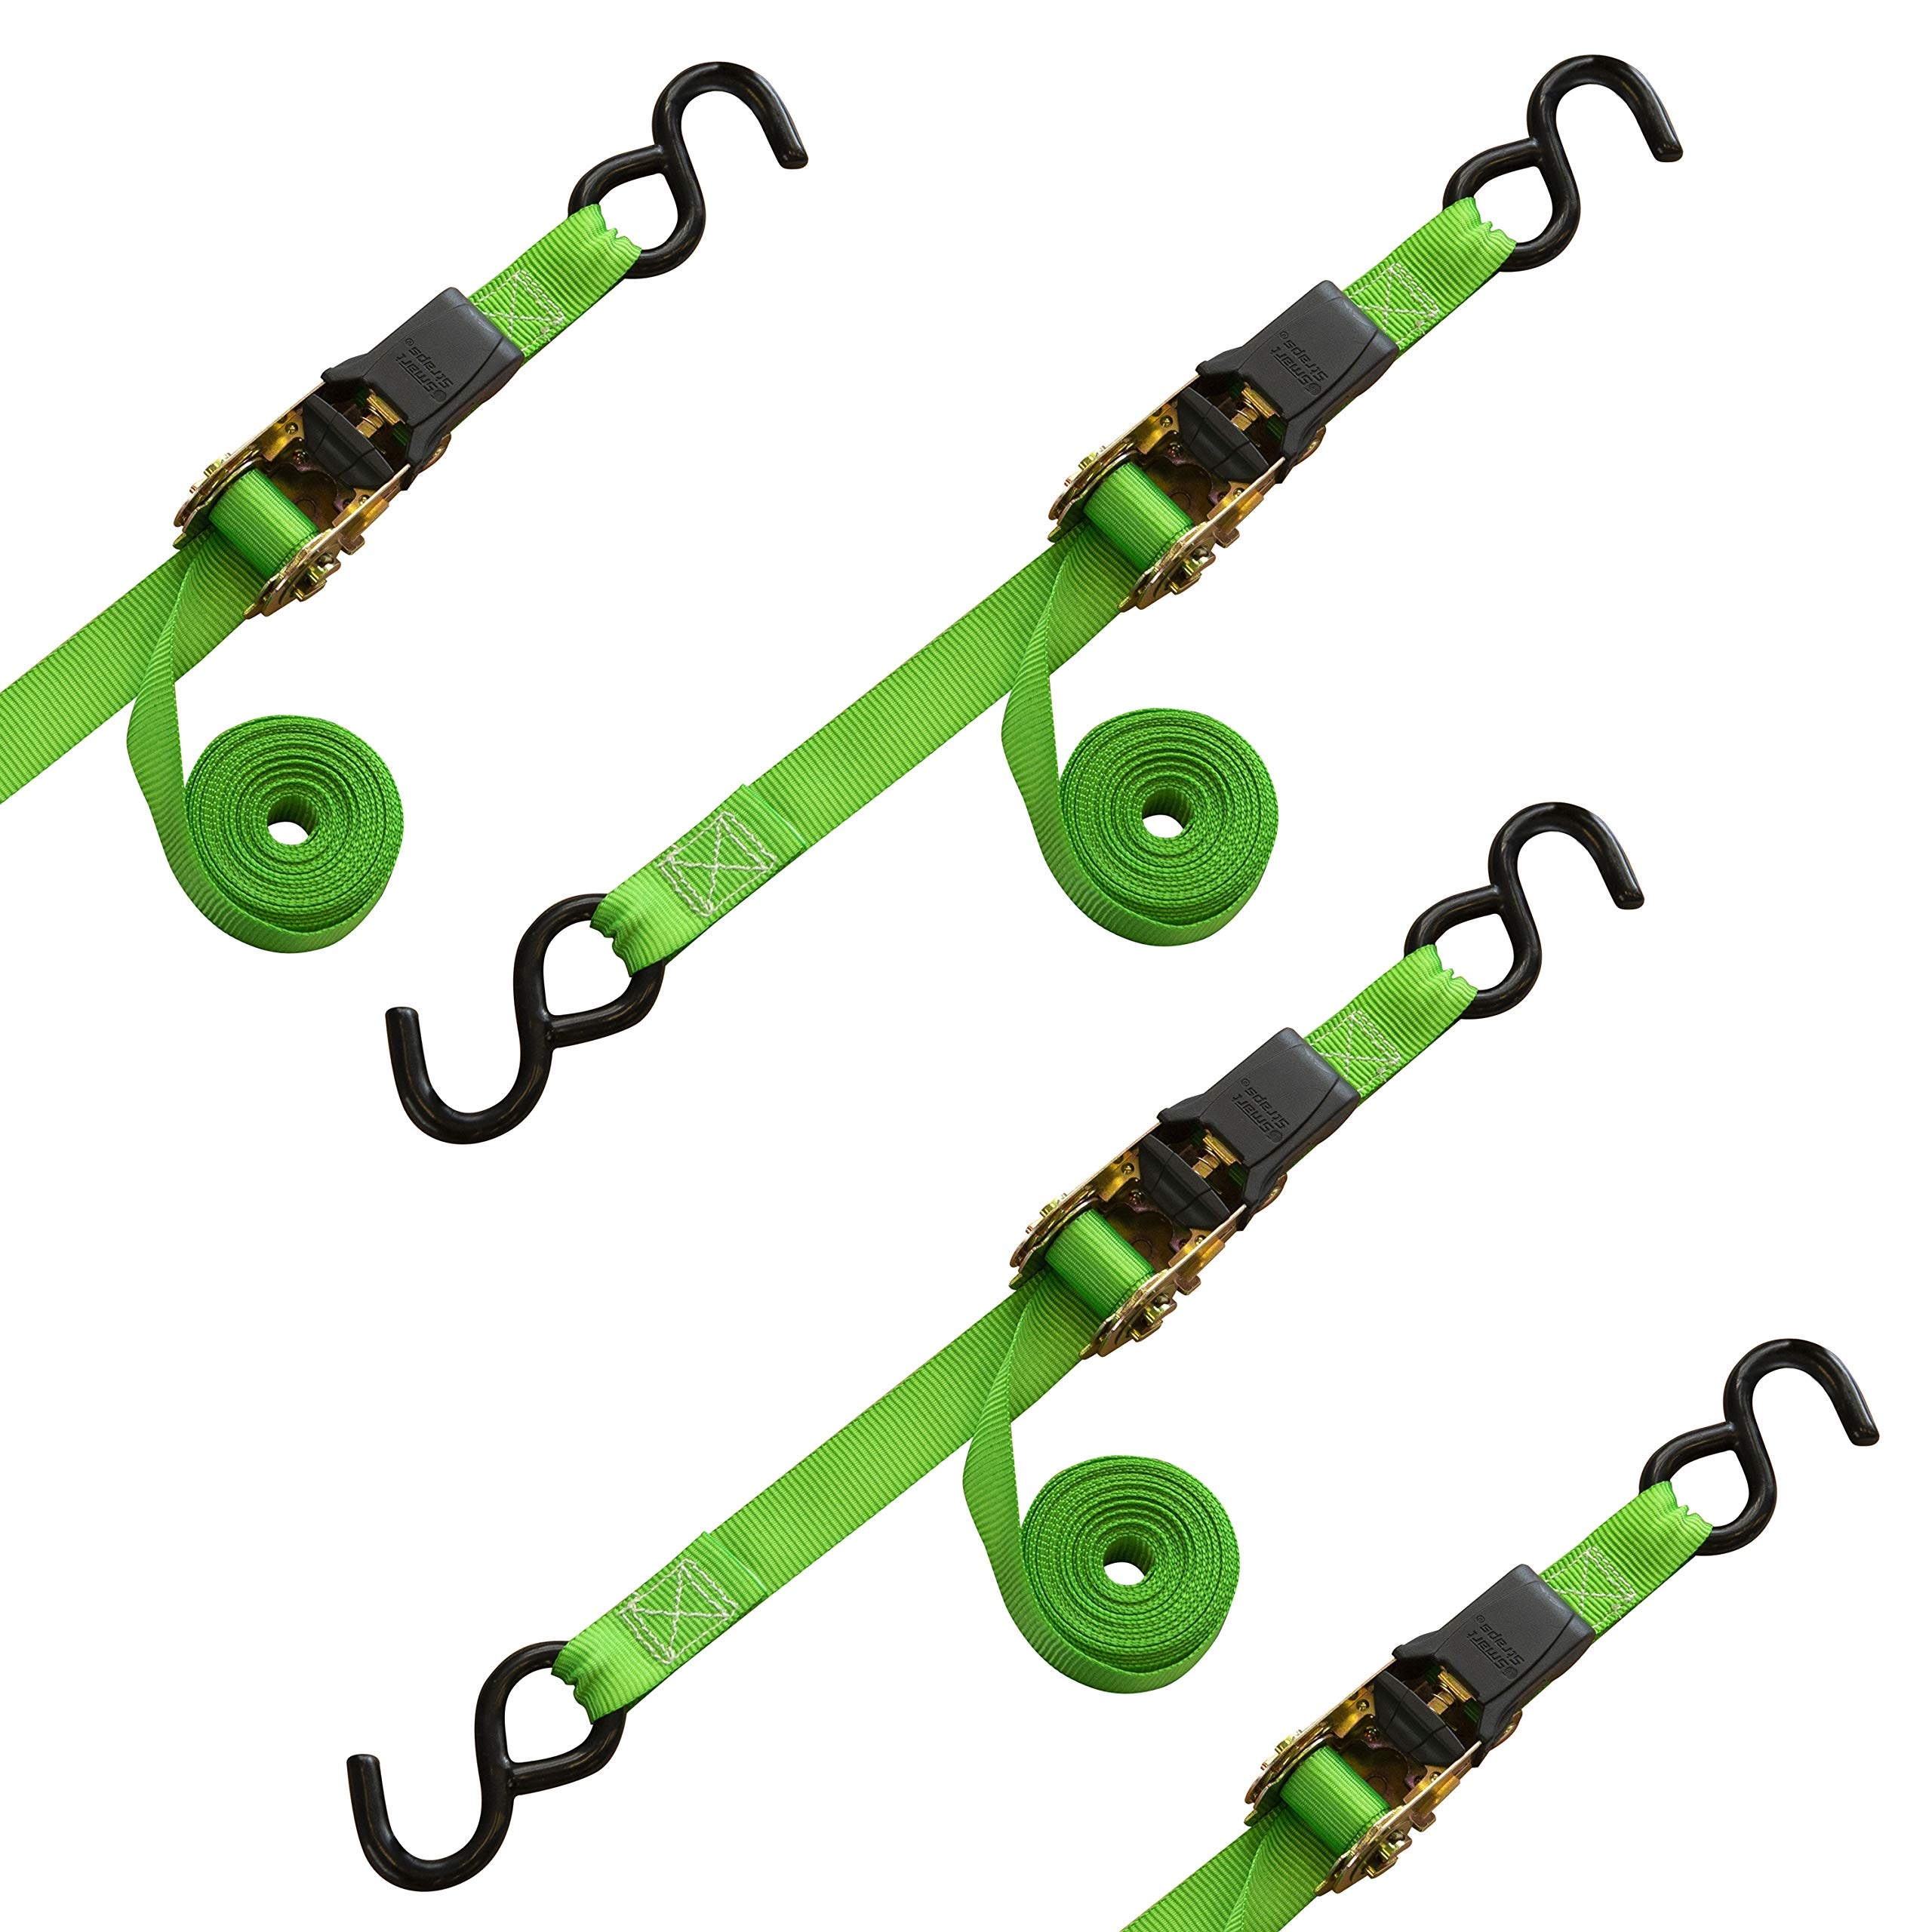 SmartStraps 14-Foot Padded Ratchet Tie Down (4pk) 1,500 lbs Break Strength - 500 lbs Safe Work Load – Haul Lighter Loads in Your Pickup – Secure Dirt Bikes, ATVs, Mowers and More by SmartStraps